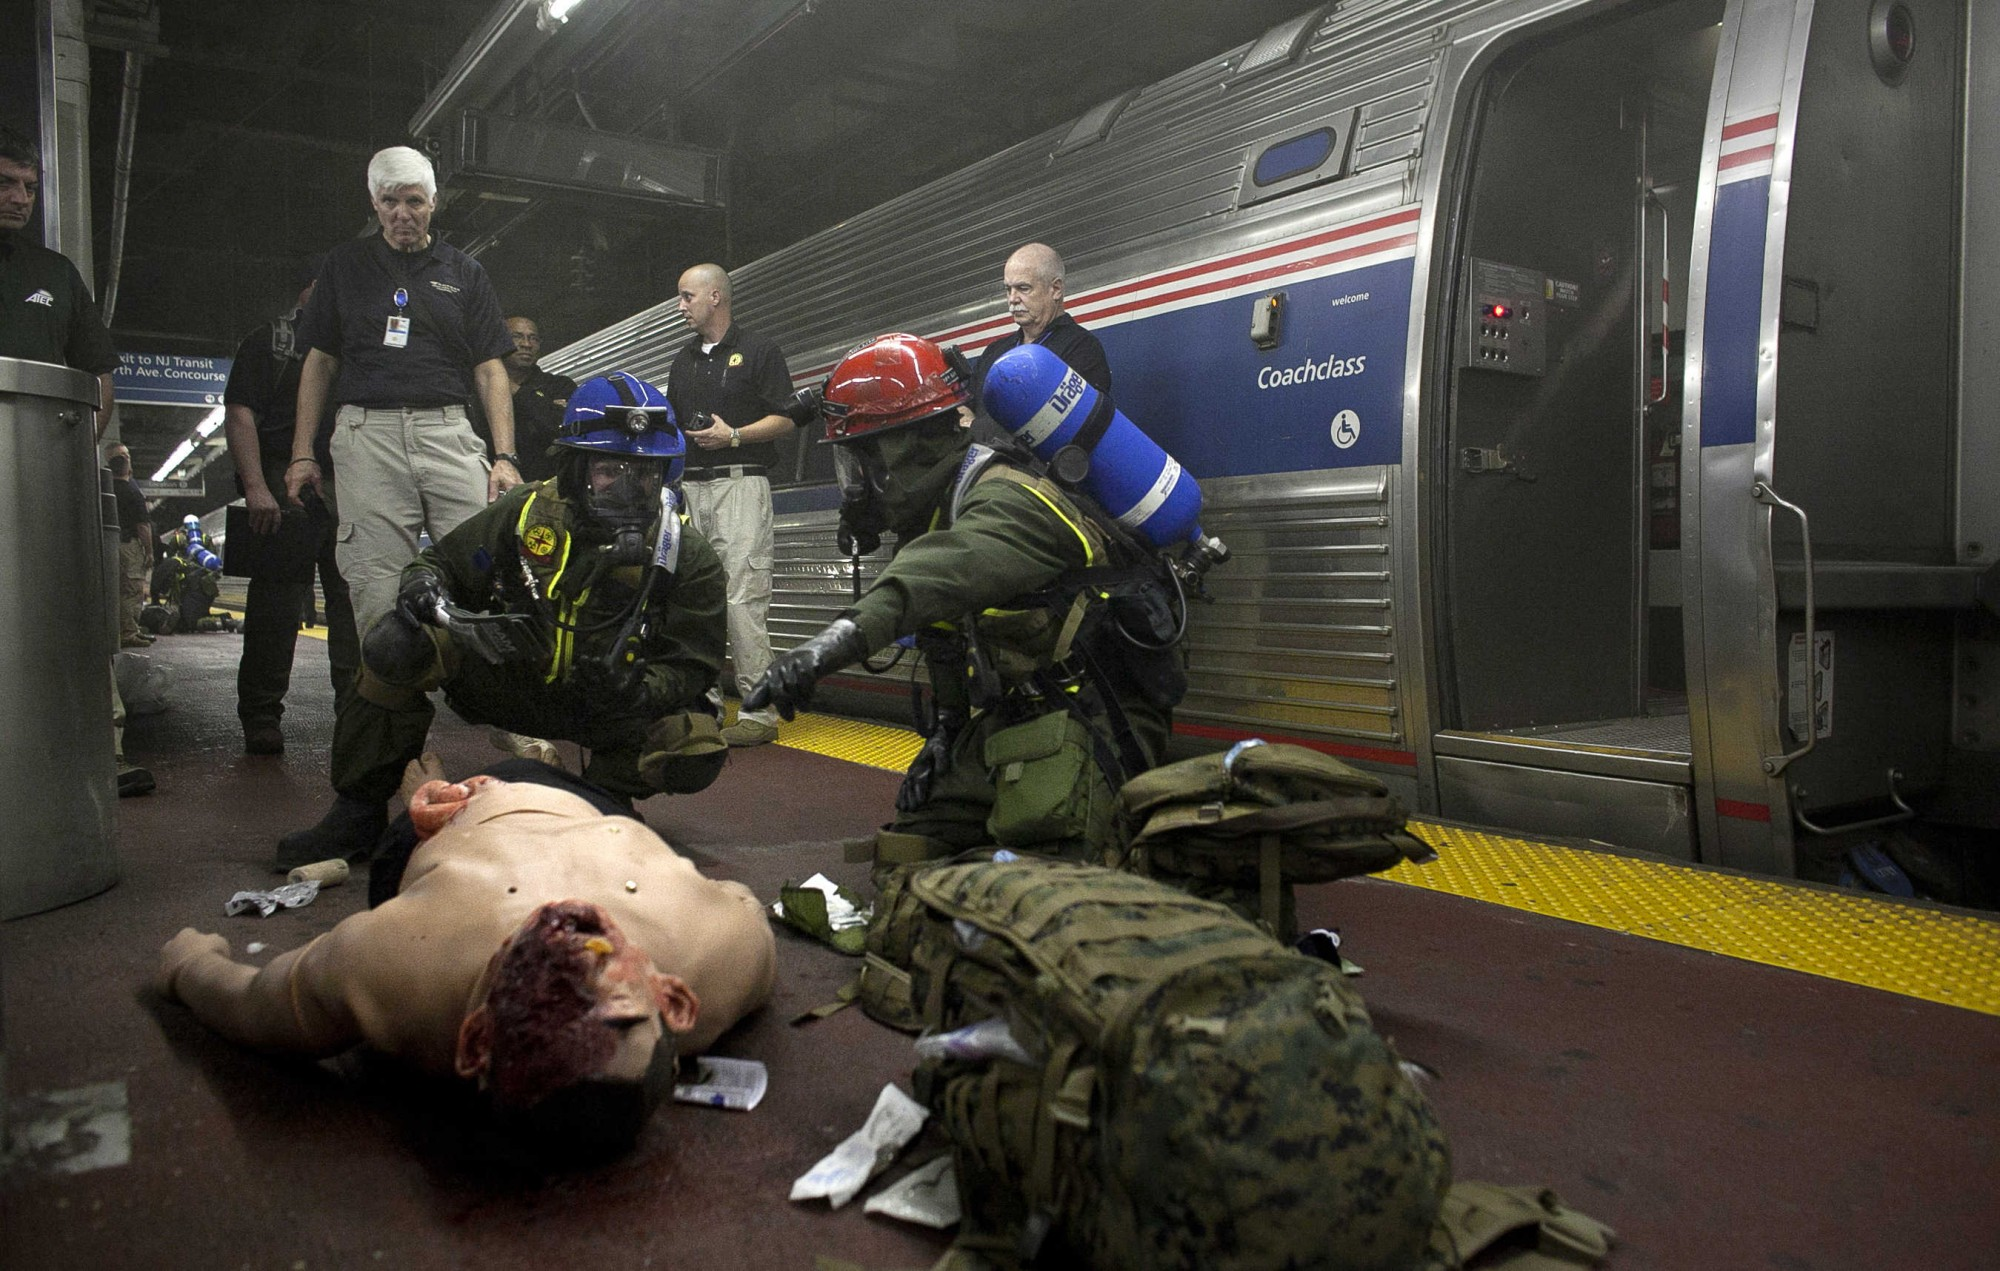 US Marines And New York Fire Fighters Take Part In Chemical Incident Drill In Penn Station